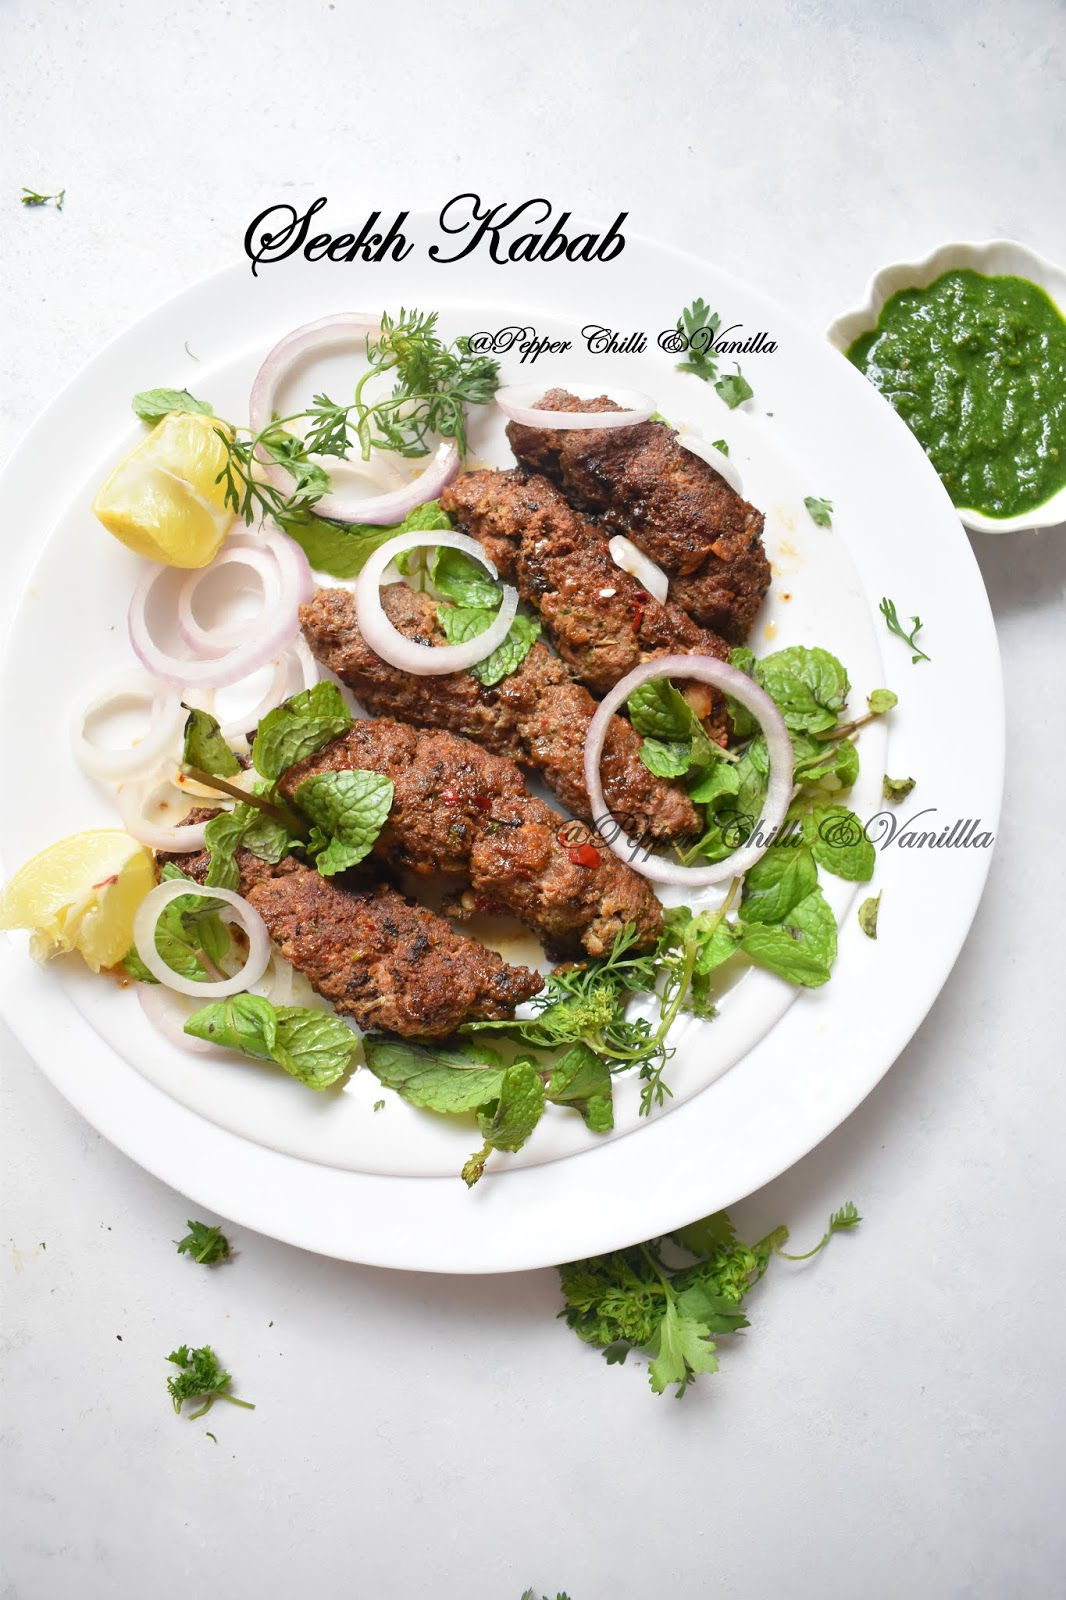 how to make seekh kabab/seekh kabab